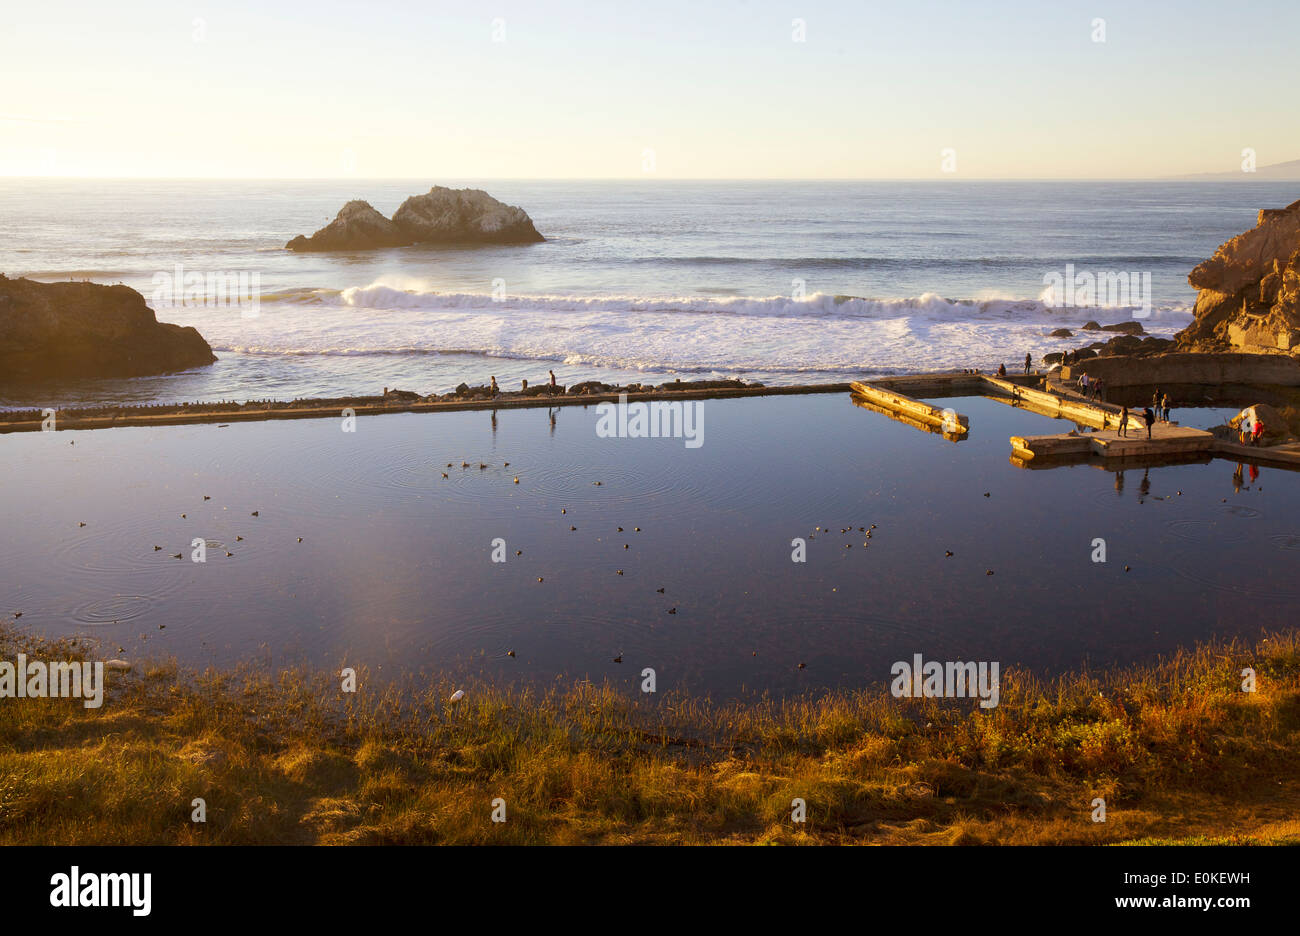 People walk along the sea wall at the Sutro Bath Ruins at Lands End in San Francisco, California. - Stock Image